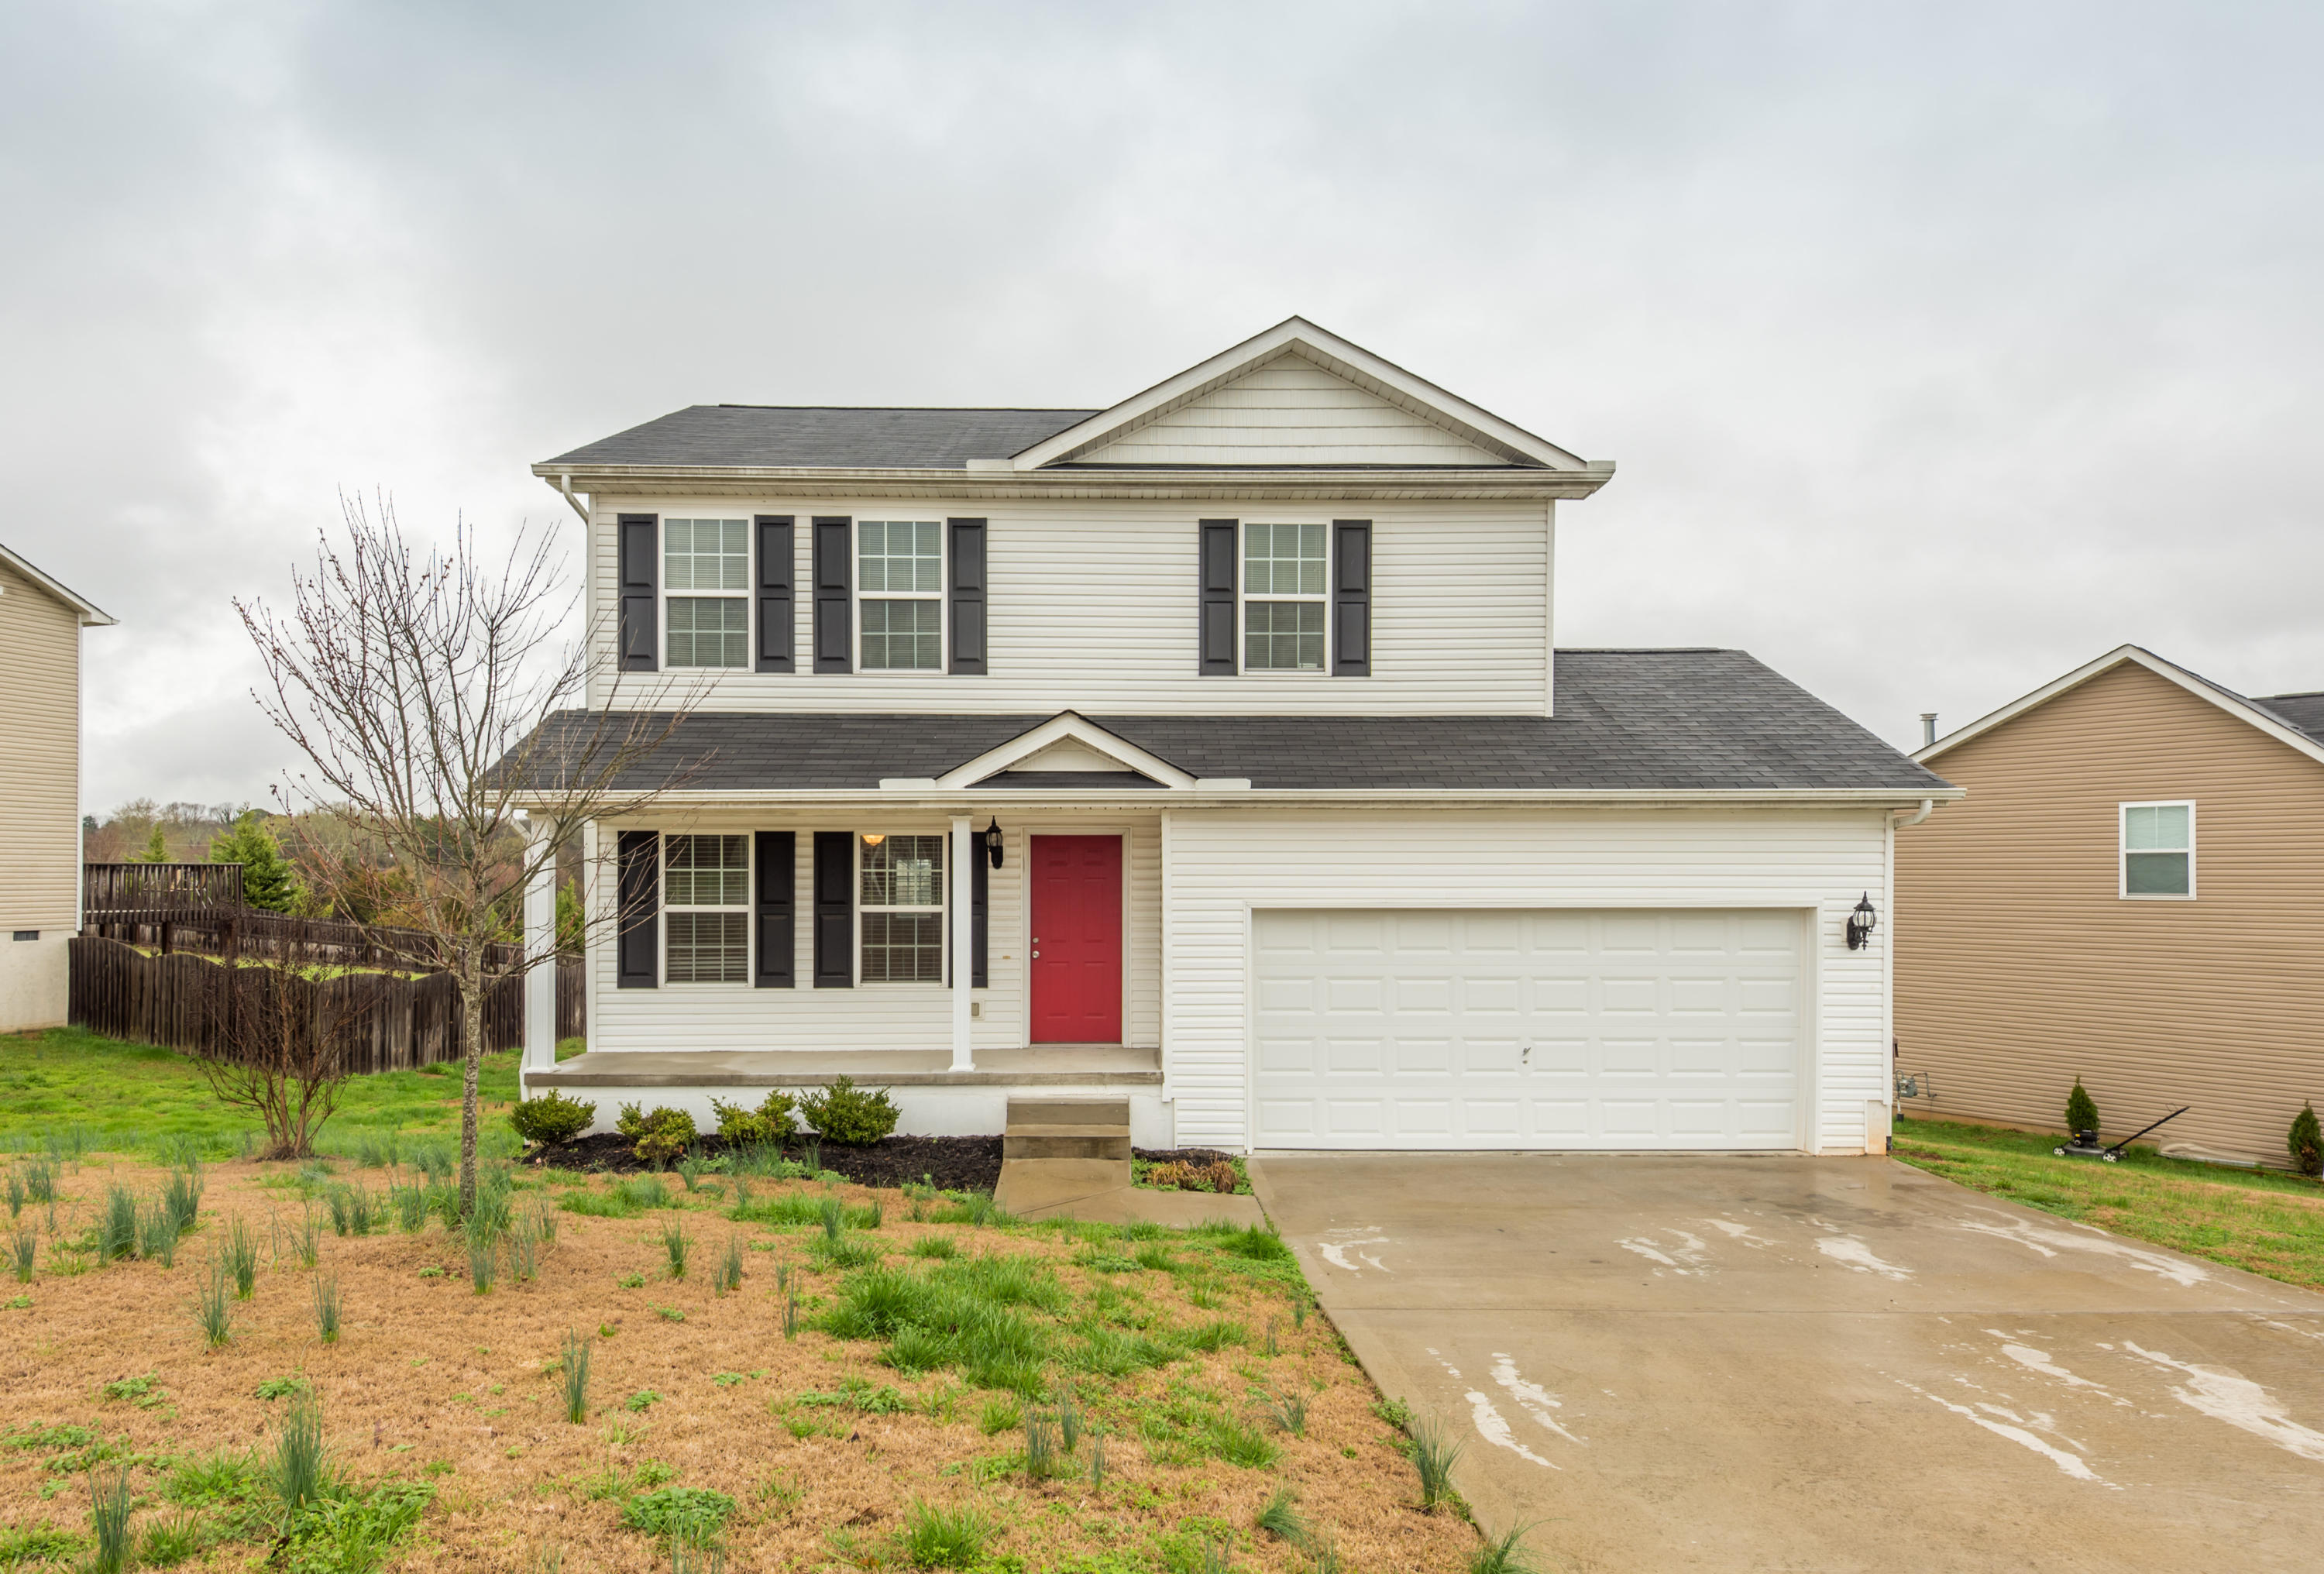 1248 Swan Pond Lane, Knoxville, Tennessee 37914, 3 Bedrooms Bedrooms, ,2 BathroomsBathrooms,Single Family,For Sale,Swan Pond,1032348